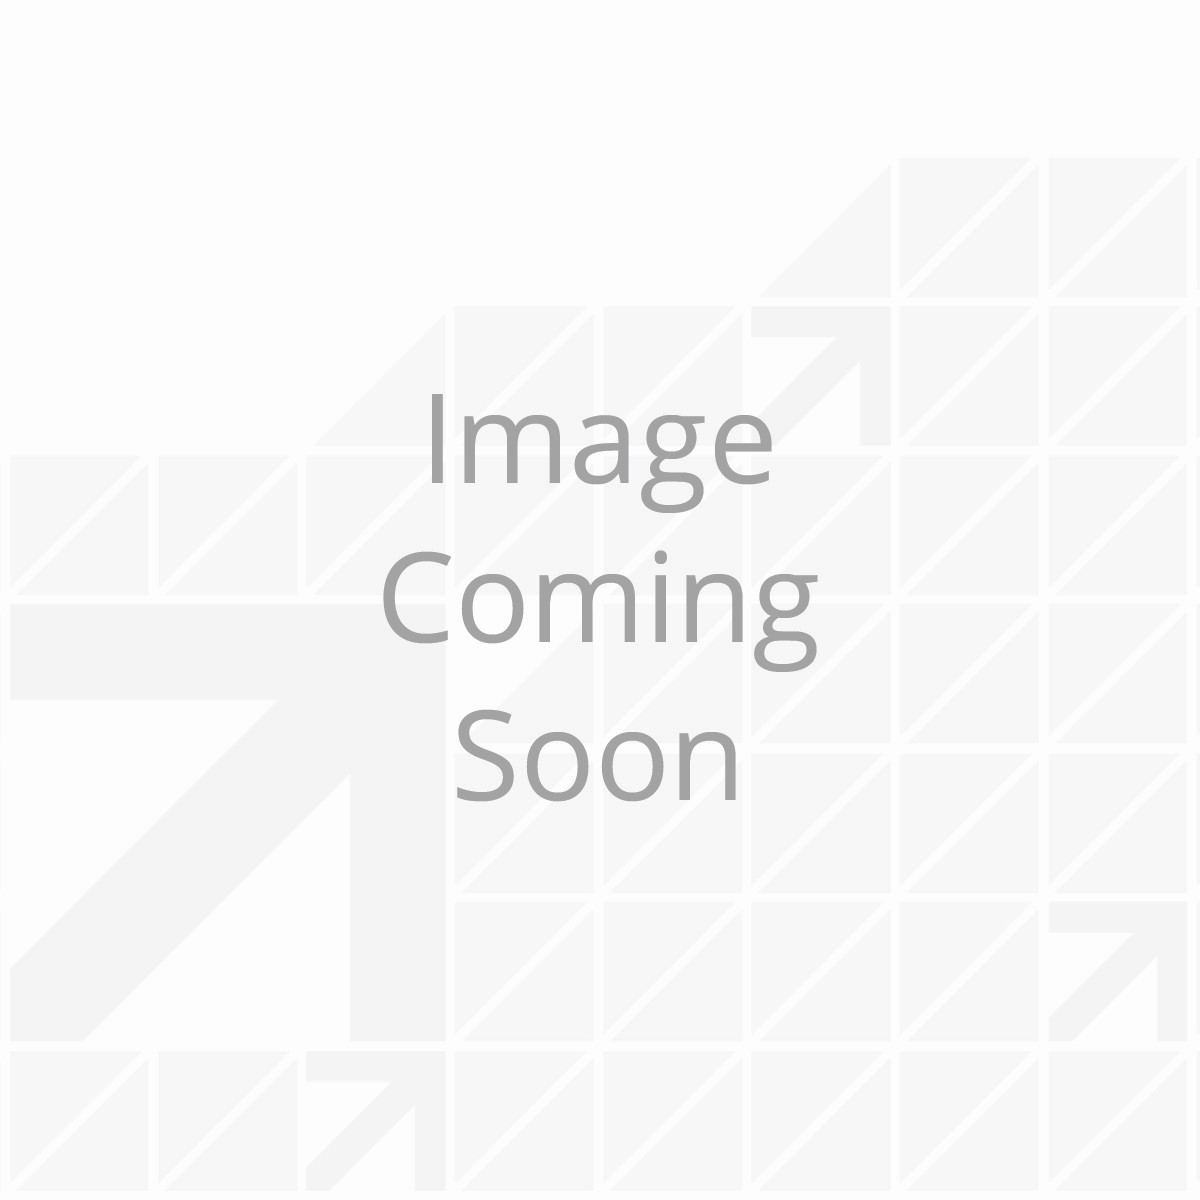 "1"" x 1-1/4"" Surface-Mounted Tie-Down D-Rings (1,200 lbs., Clear Zinc, 2-Pack)"